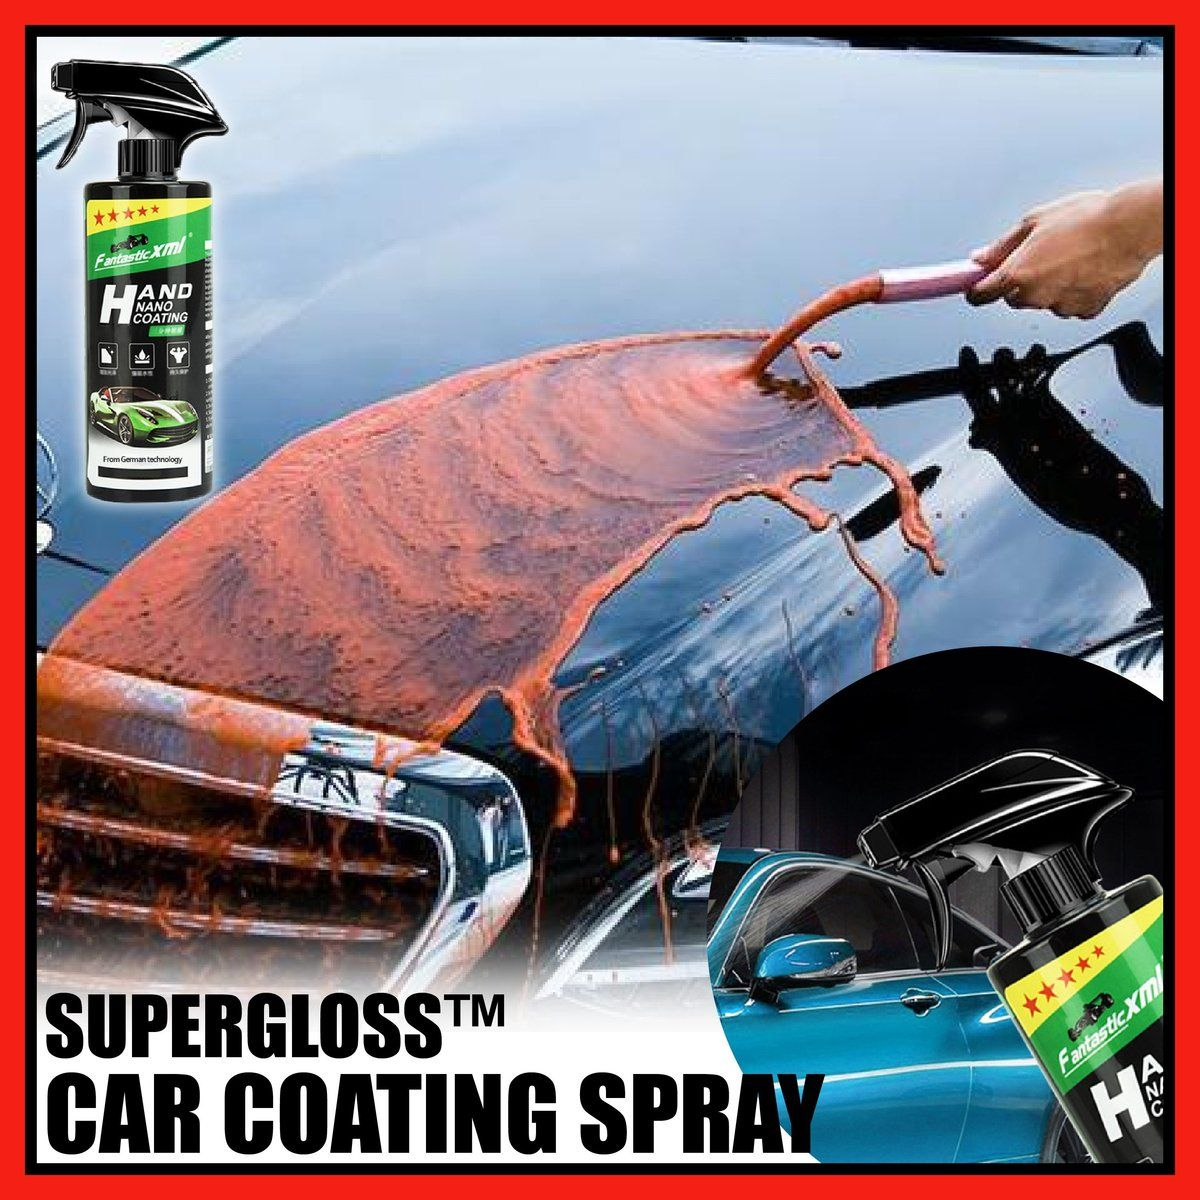 Supergloss Car Coating Spray Get The Hollywood Shine On Your Car Wi Trendy Selected In 2020 Car Coating Car Wax Car Painting